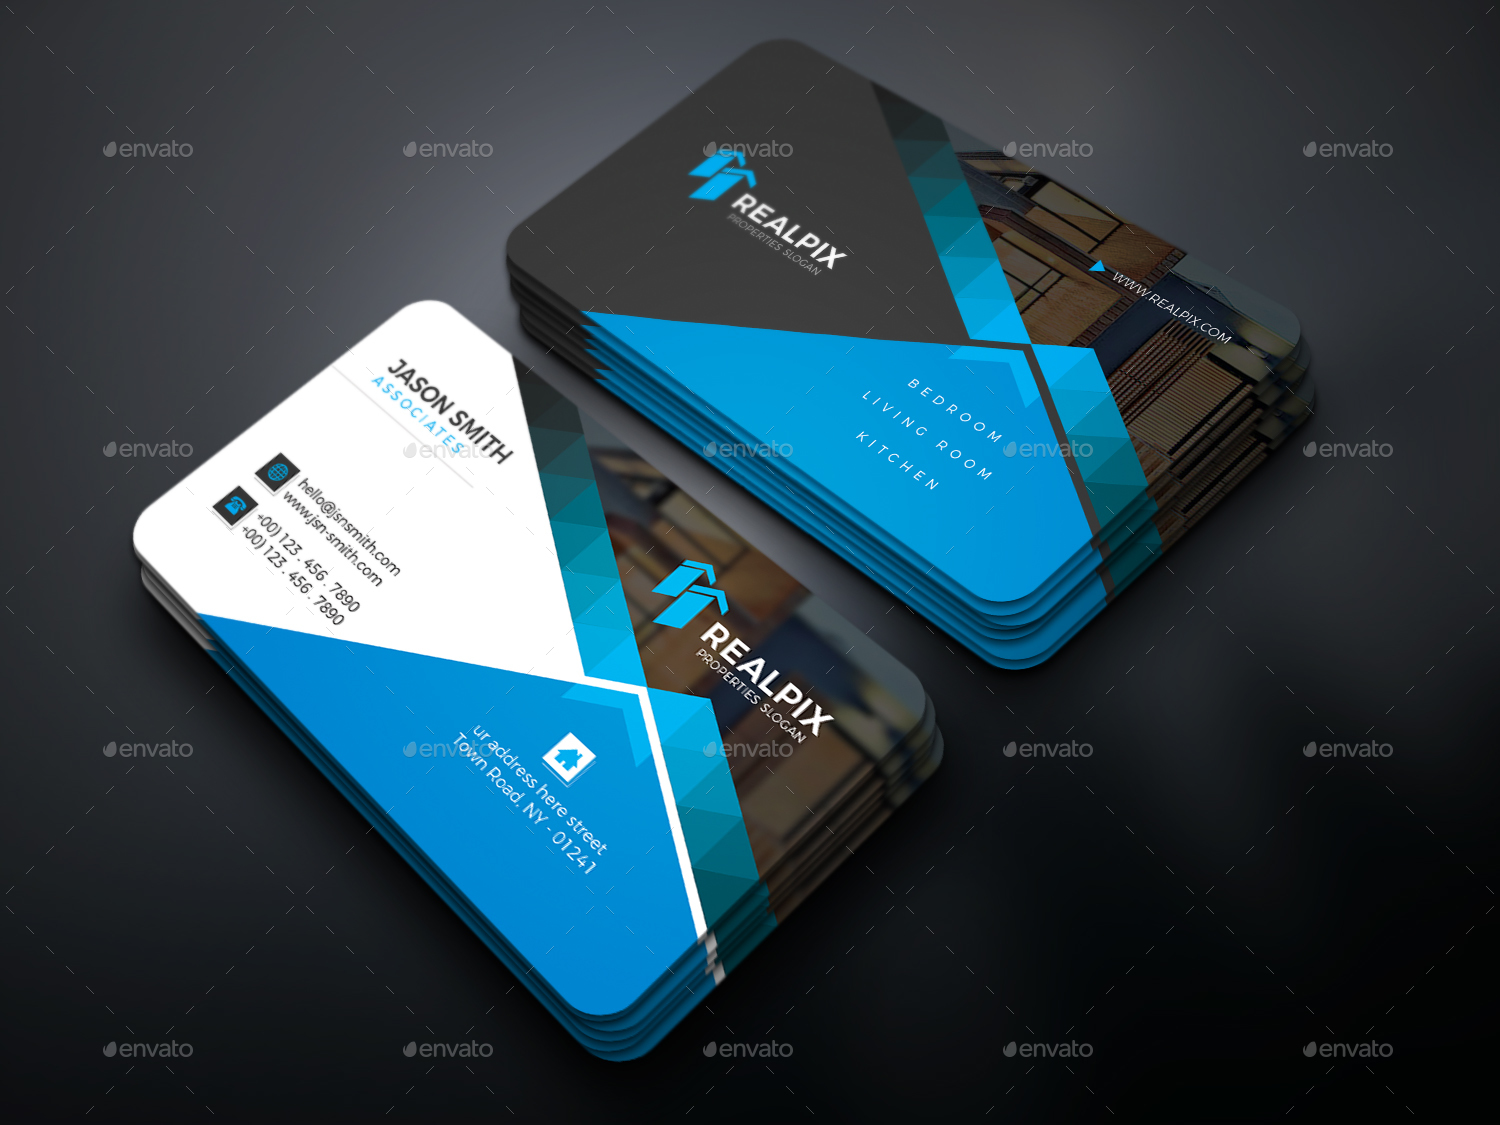 Real estate business card by uxcred graphicriver real estate business card business cards print templates preview image set01screenshotg preview image set02screenshotg magicingreecefo Images